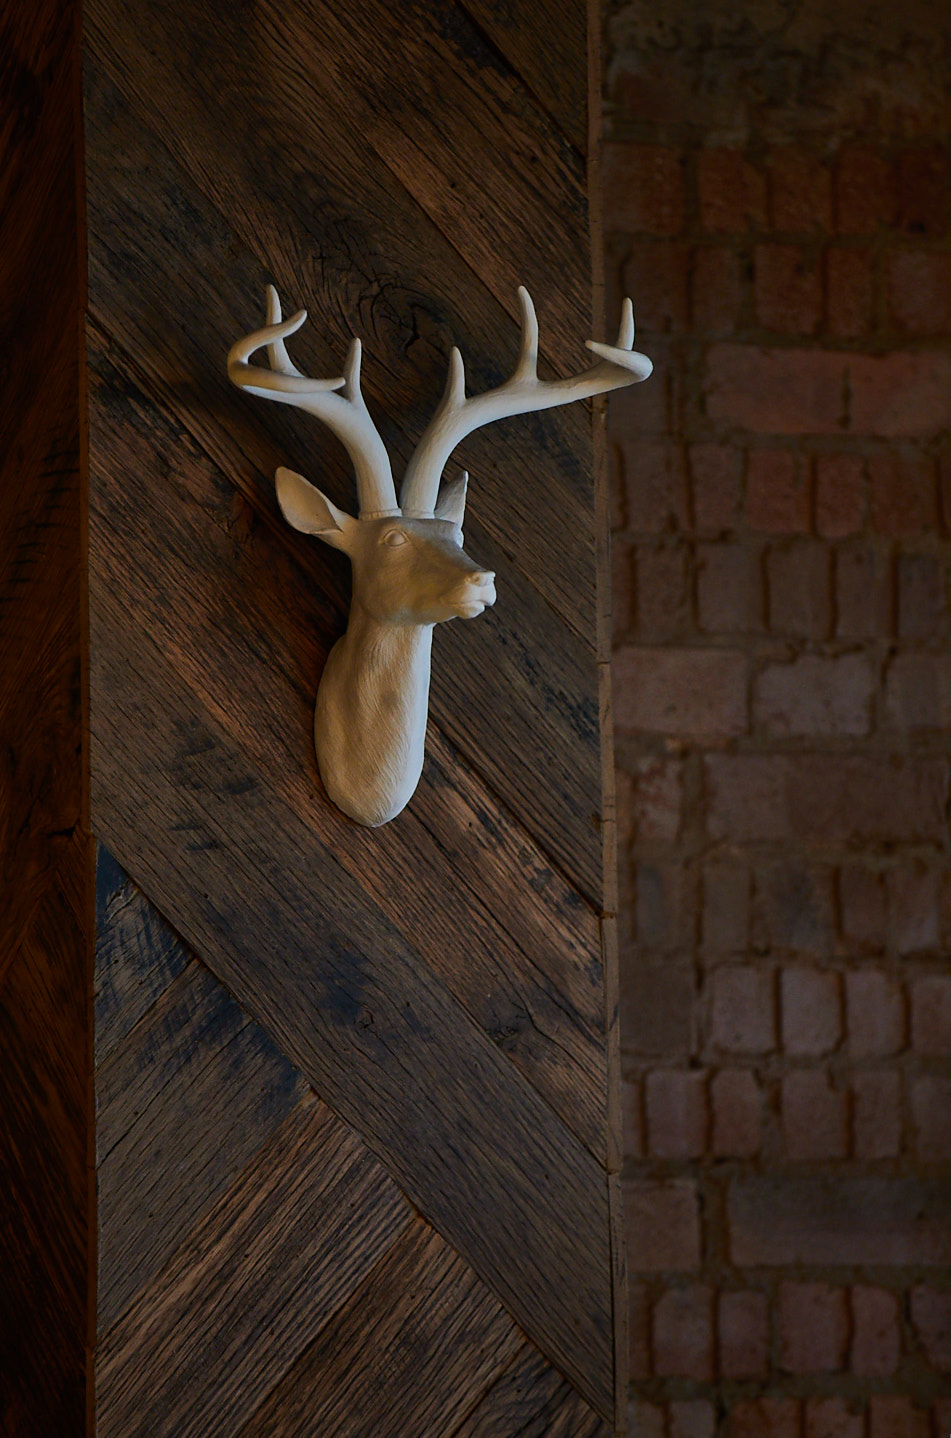 Reclaimed wood clad wall with ceramic deer hung